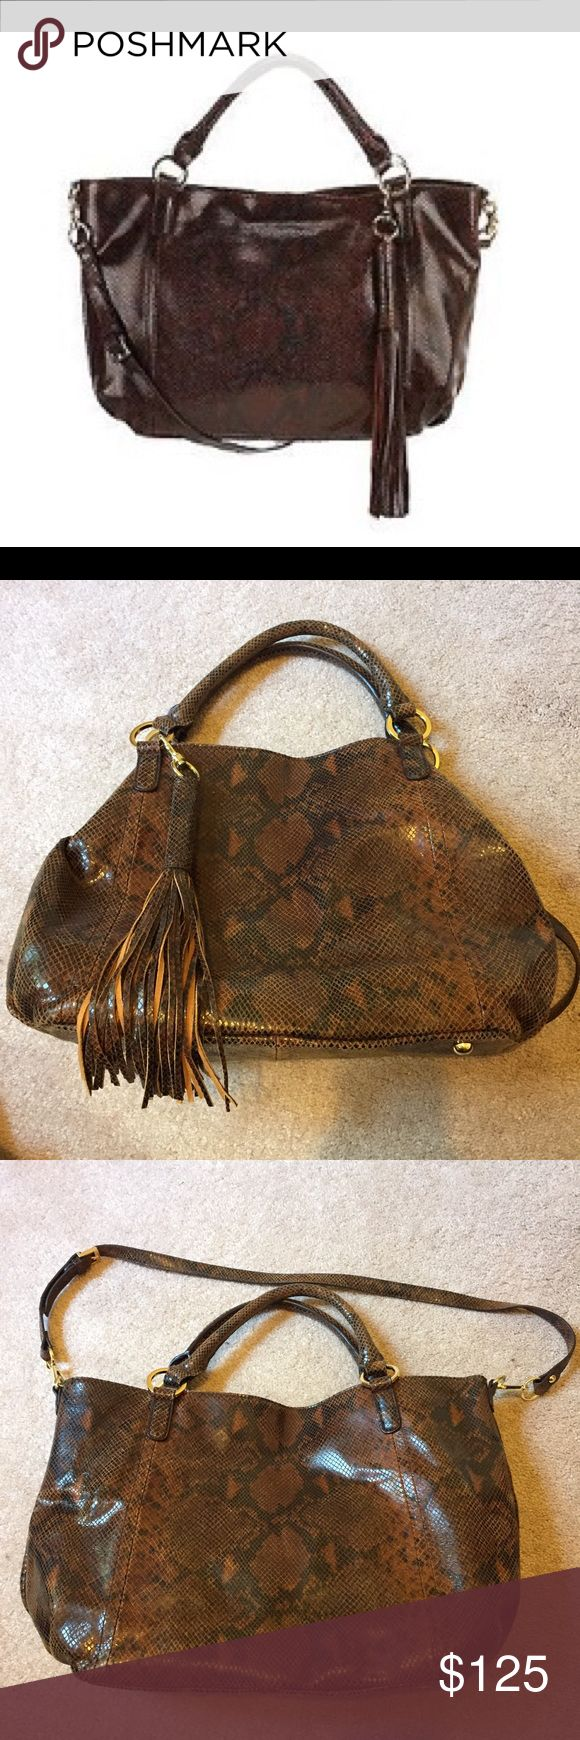 "NEW G.I.L.I. Leather Roma 2 Espresso Brown Lizard NWOT Dark and light brown shiny snake print large handbag. Measures approximately 16""W x 12""H x 6-1/2""D with a 16"" to 18"" strap drop and a 7"" handle drop. 100% leather. Lined interior, back-wall zip pocket, two front-wall slip pockets. Gold hardware; double handles; removable, adjustable strap; hanging removable fringe tassel charm; four bottom feet; center magnetic snap closure; interior hook closure. G.I.L.I. Bags Shoulder Bags"